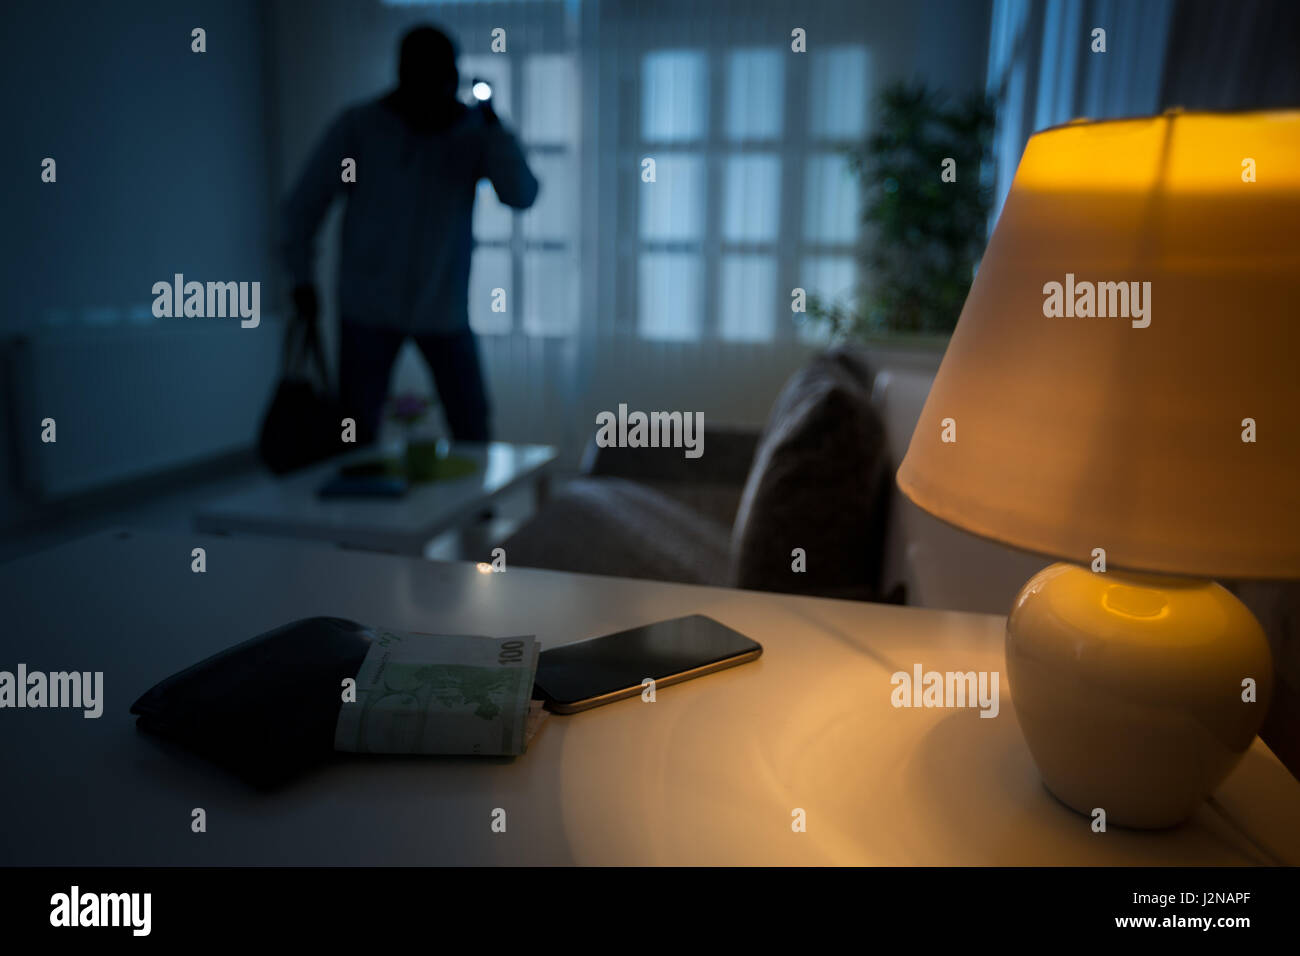 intrusion of a burglar in a house inhabited - Stock Image